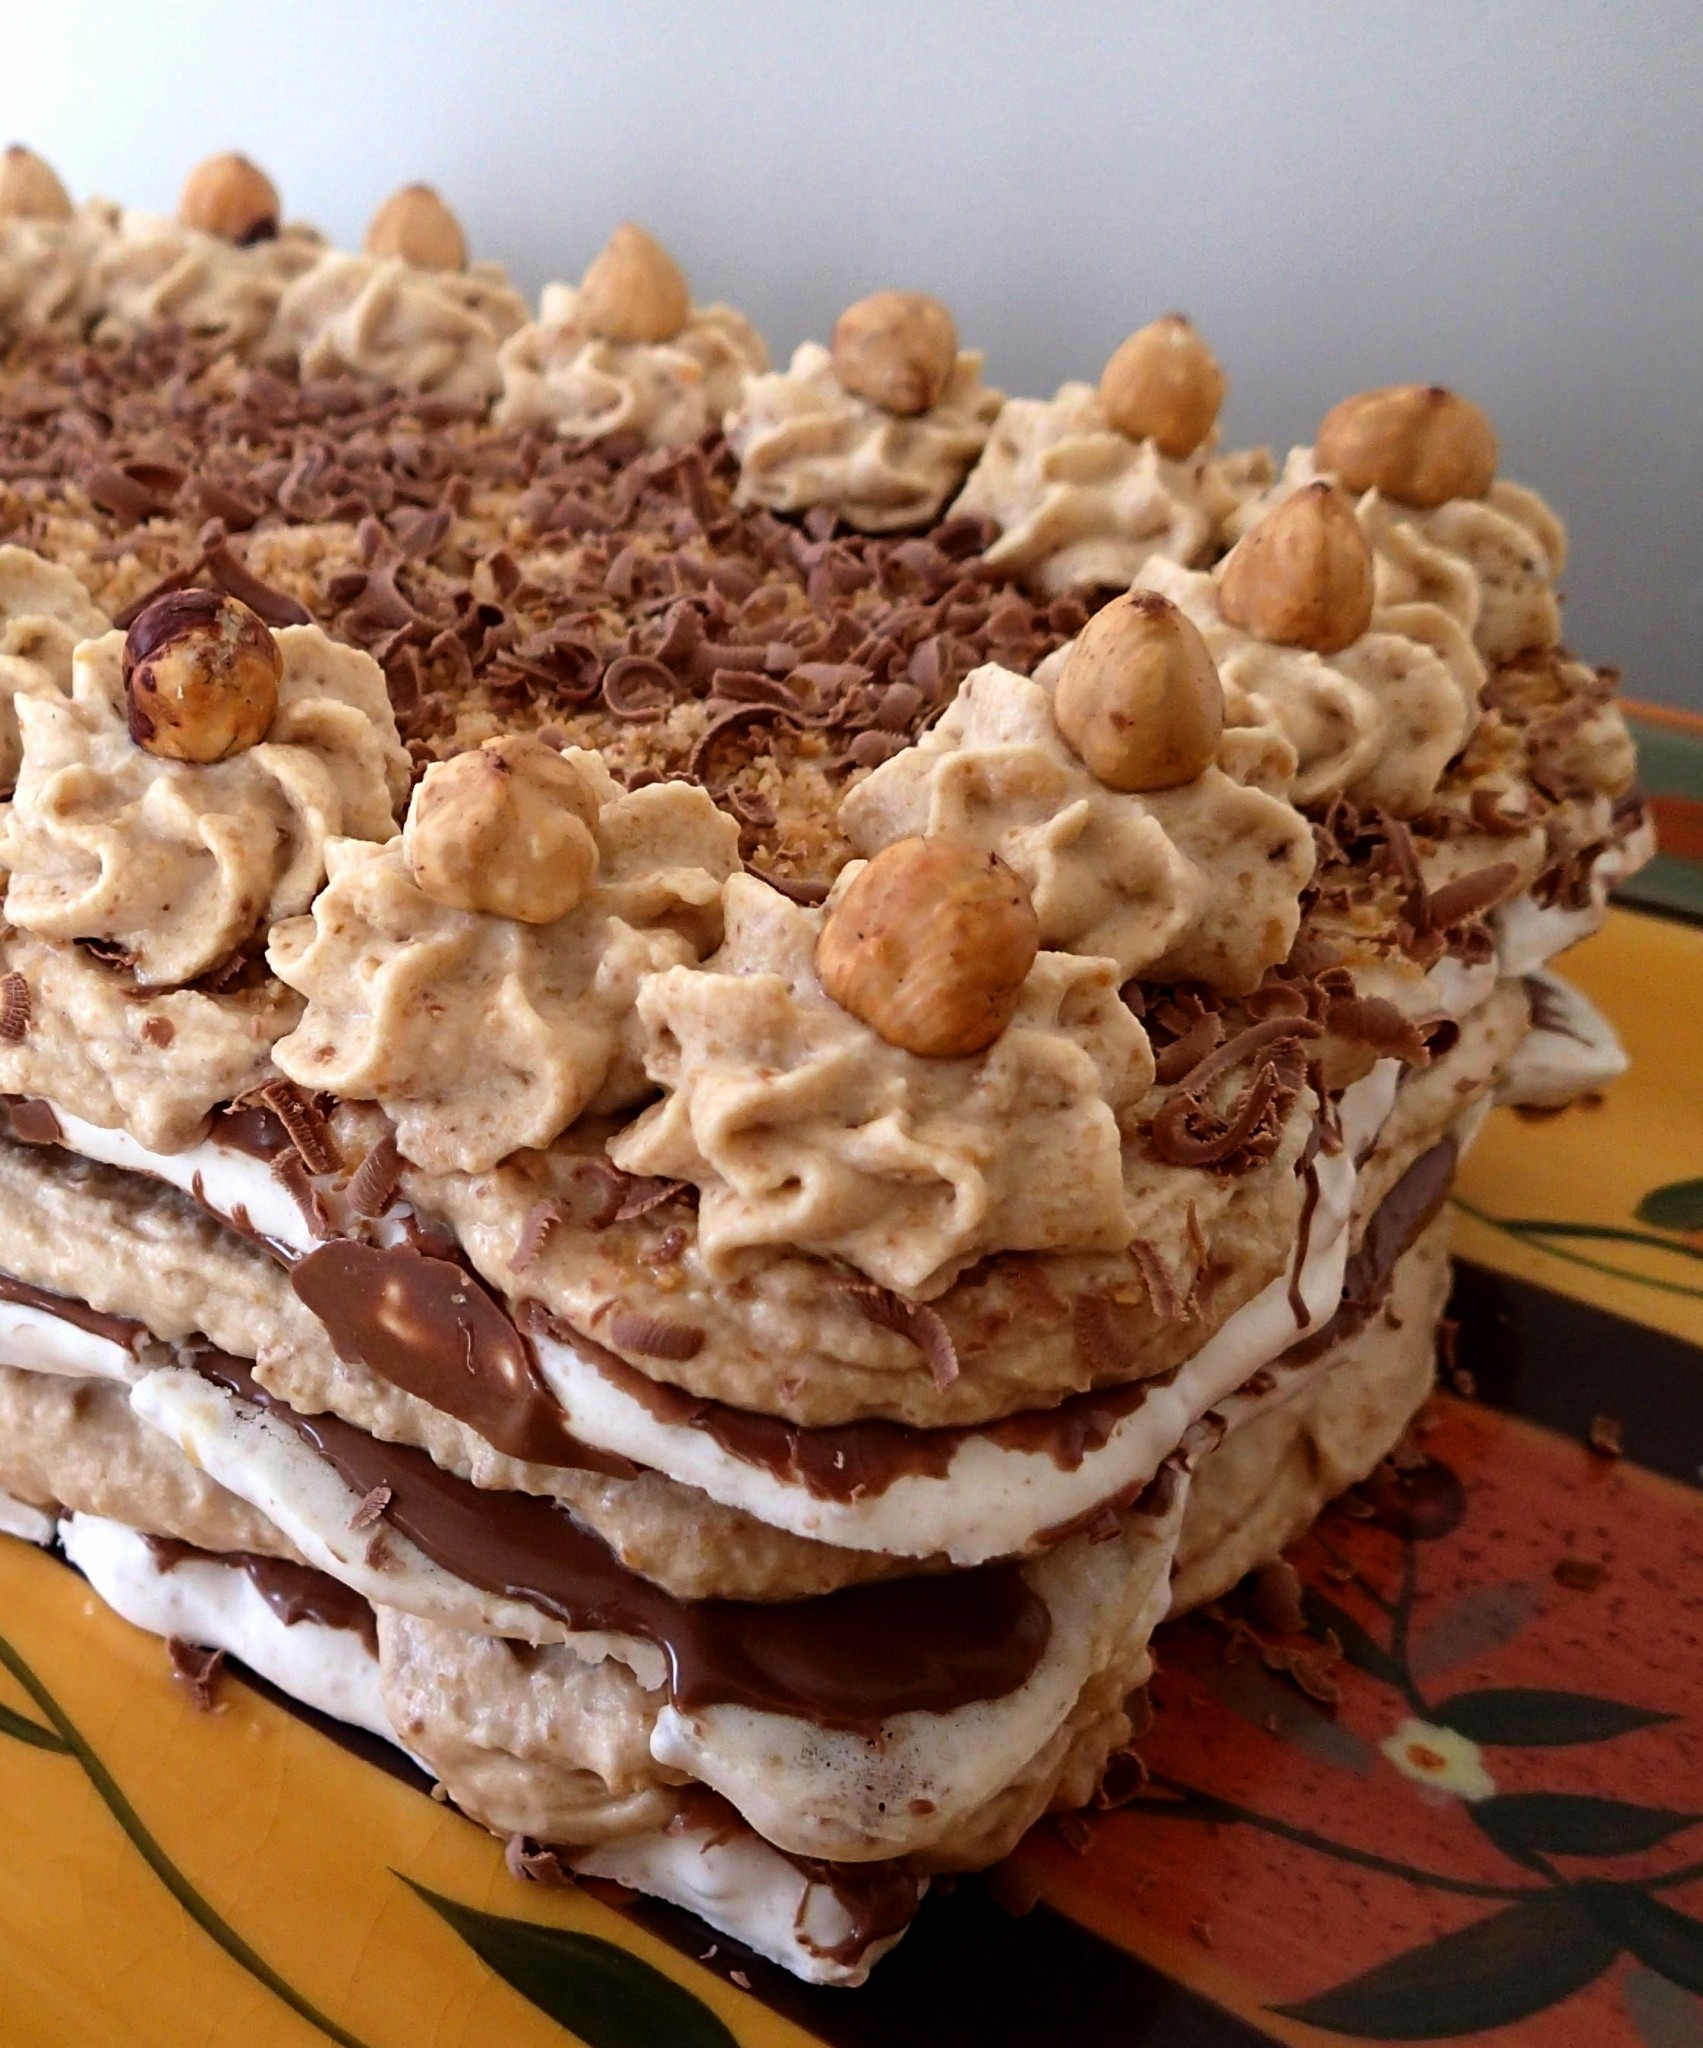 ... and filled with toasted hazelnut mocha cream. A popular Dutch dessert